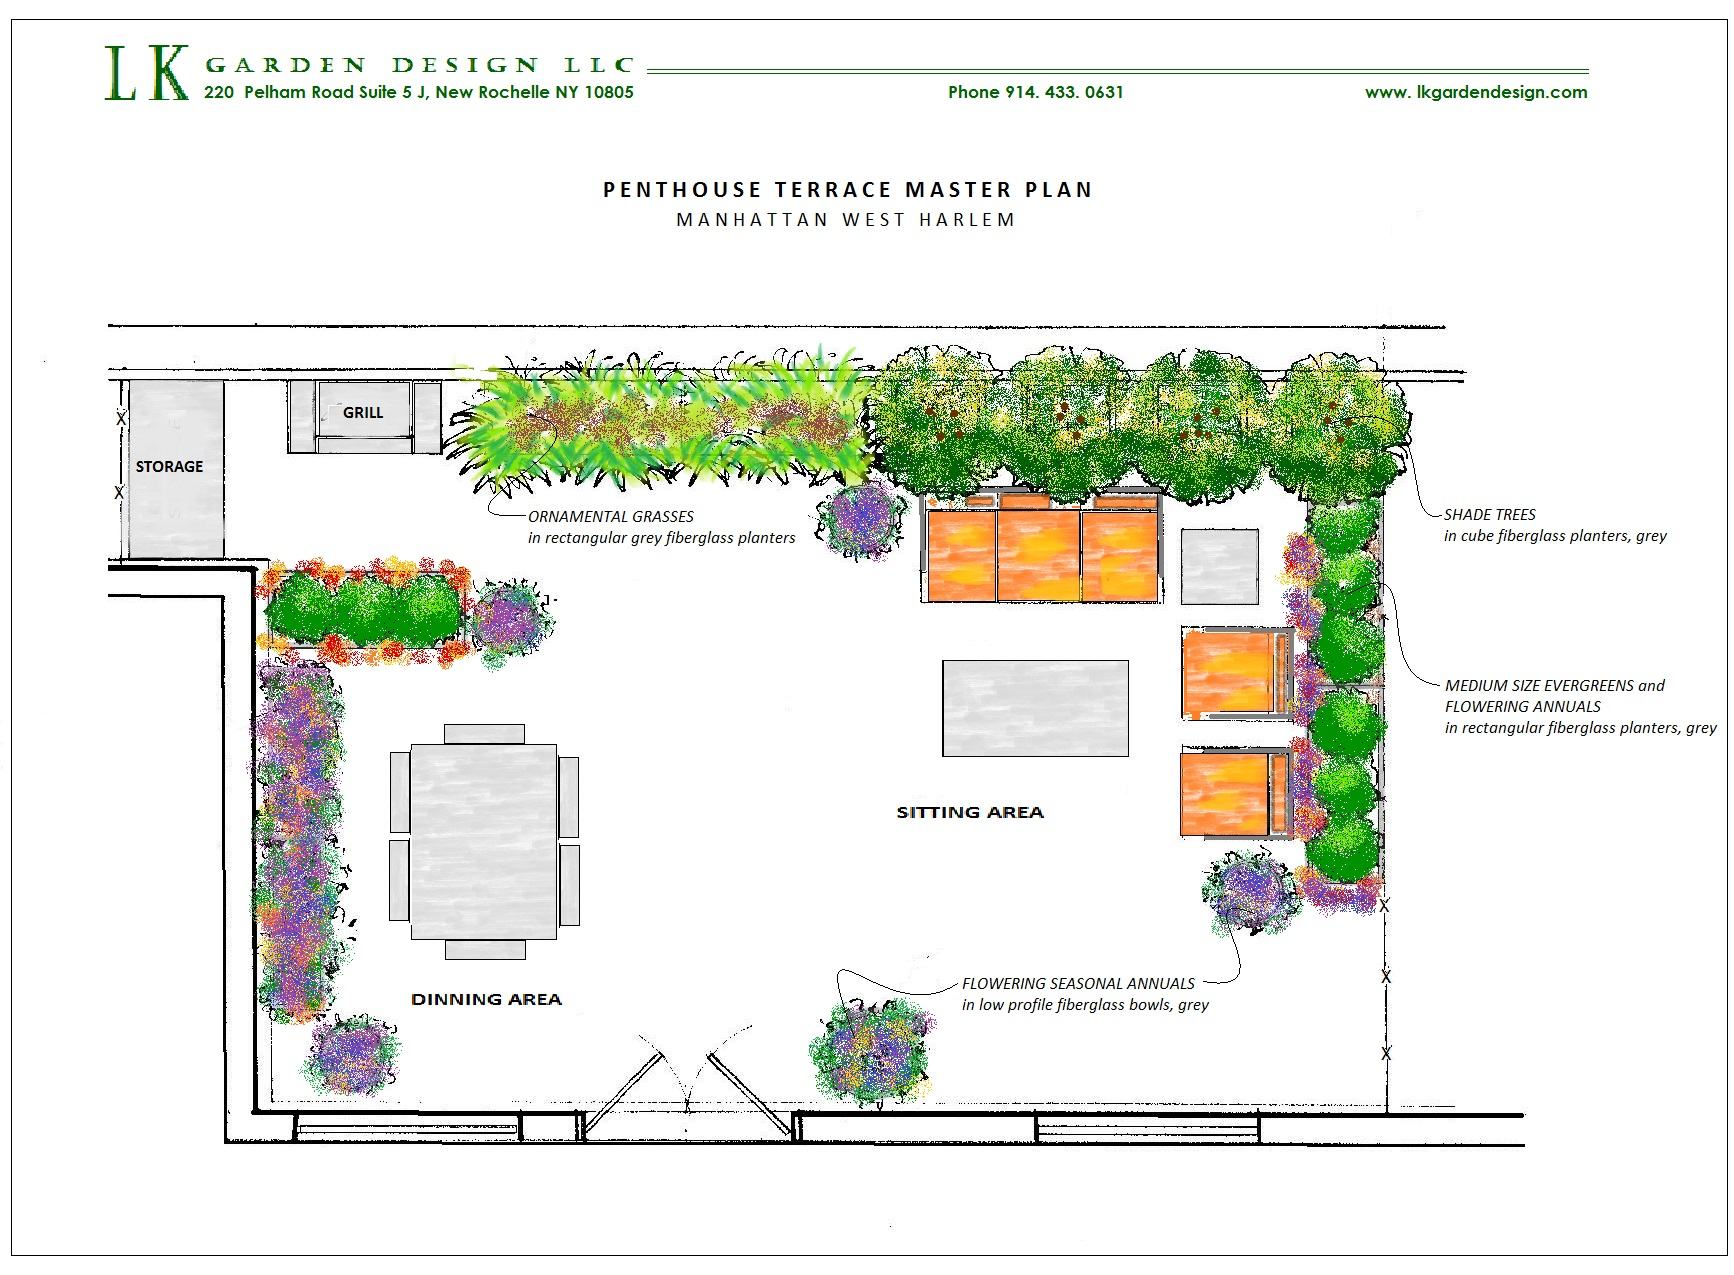 L K Garden Design LLC-Work